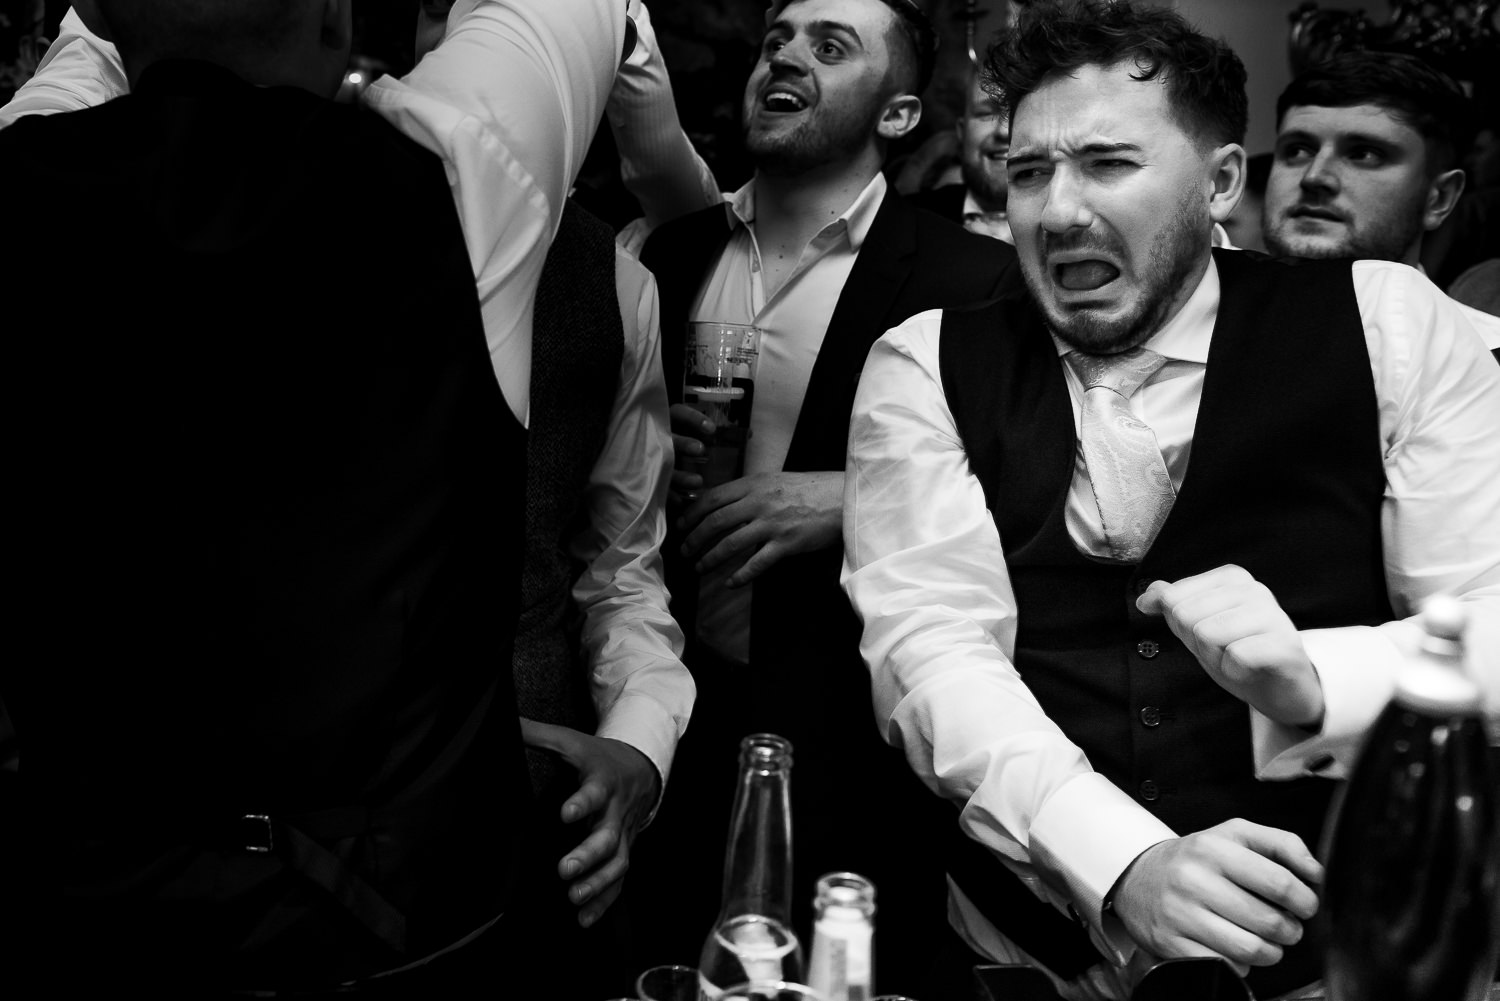 Best man pulling a face after a shot.